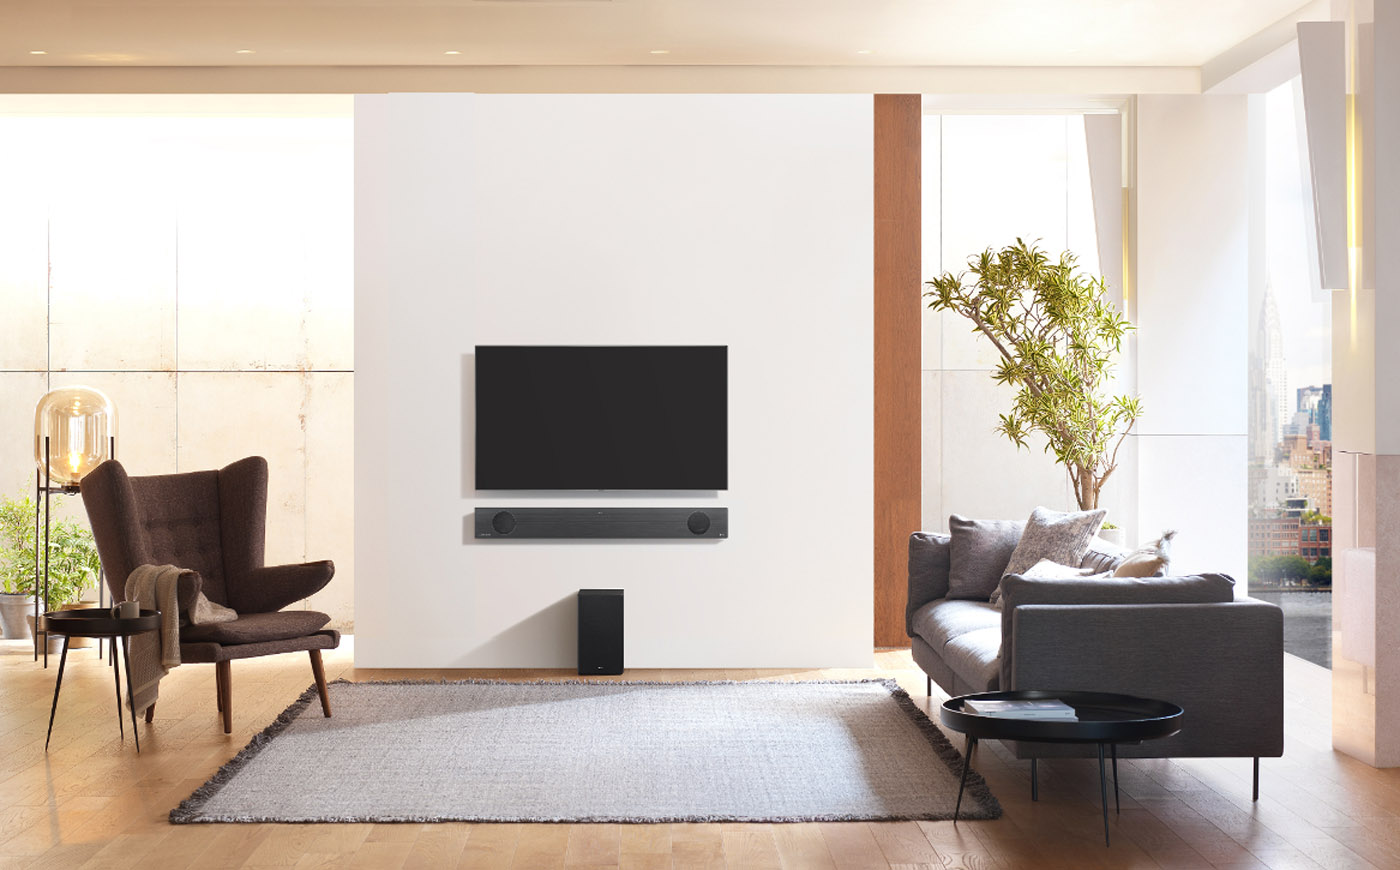 LG's 2019 Soundbar Models Include Built-in Google Assistant